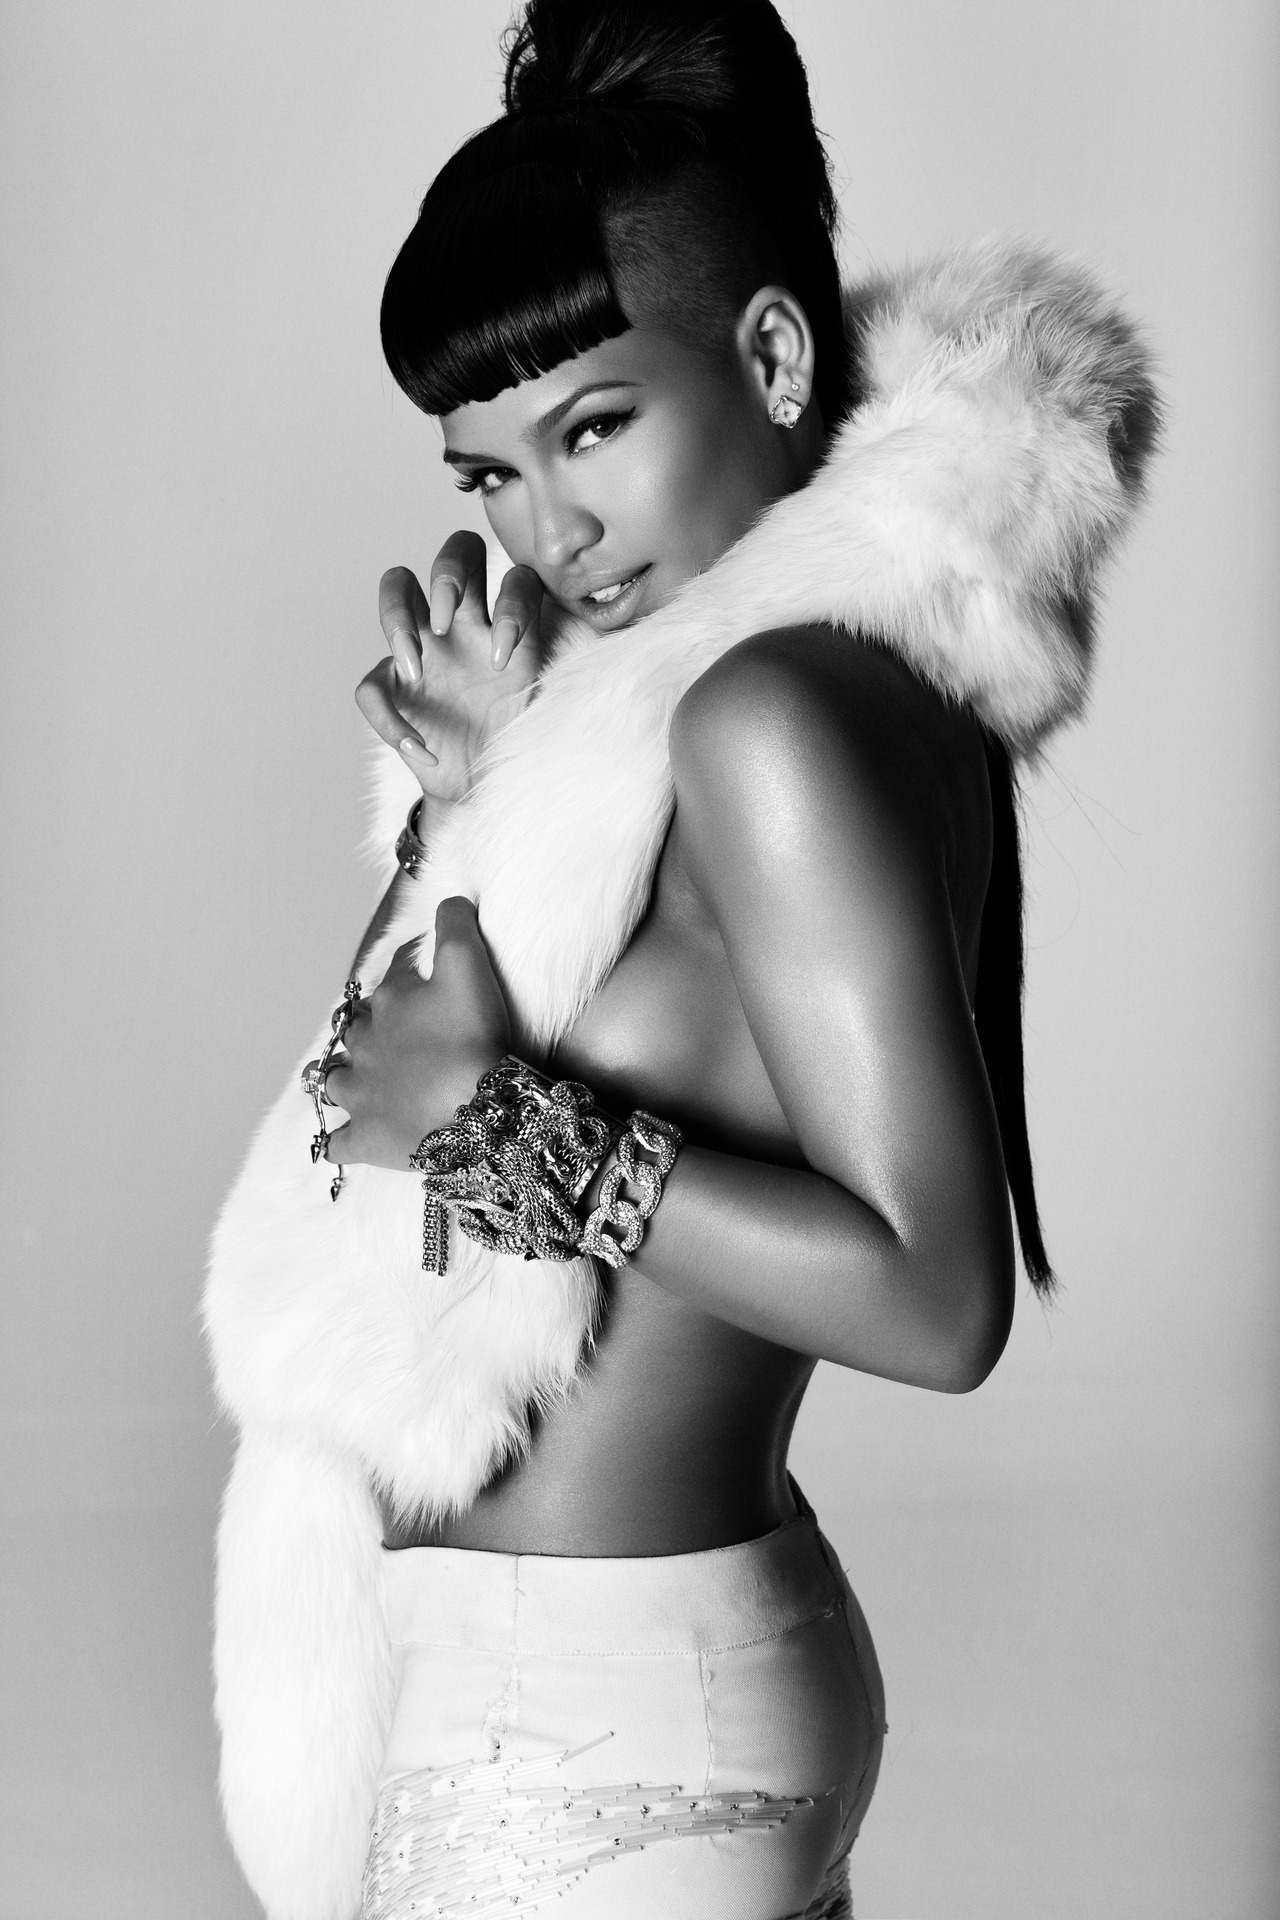 cassiearmy:  BWATT MAGAZINE: Bwattmagazine cover Girl CASSIE shot by photographer Anja Poulsen …check out the exclusive interview and pictures in the online edition on top of the blog …enjoy  CoverGirl Cassie on BWATT Magazine looking FIERCE! Download the Issue with Cassie on the Cover here: http://issuu.com/mortenlassen/docs/bwatt2 GO HERE TO WATCH THE BTS VIDEO FOOTAGE: http://vimeo.com/41458942 Source: http://bwattmagazine.tumblr.com/